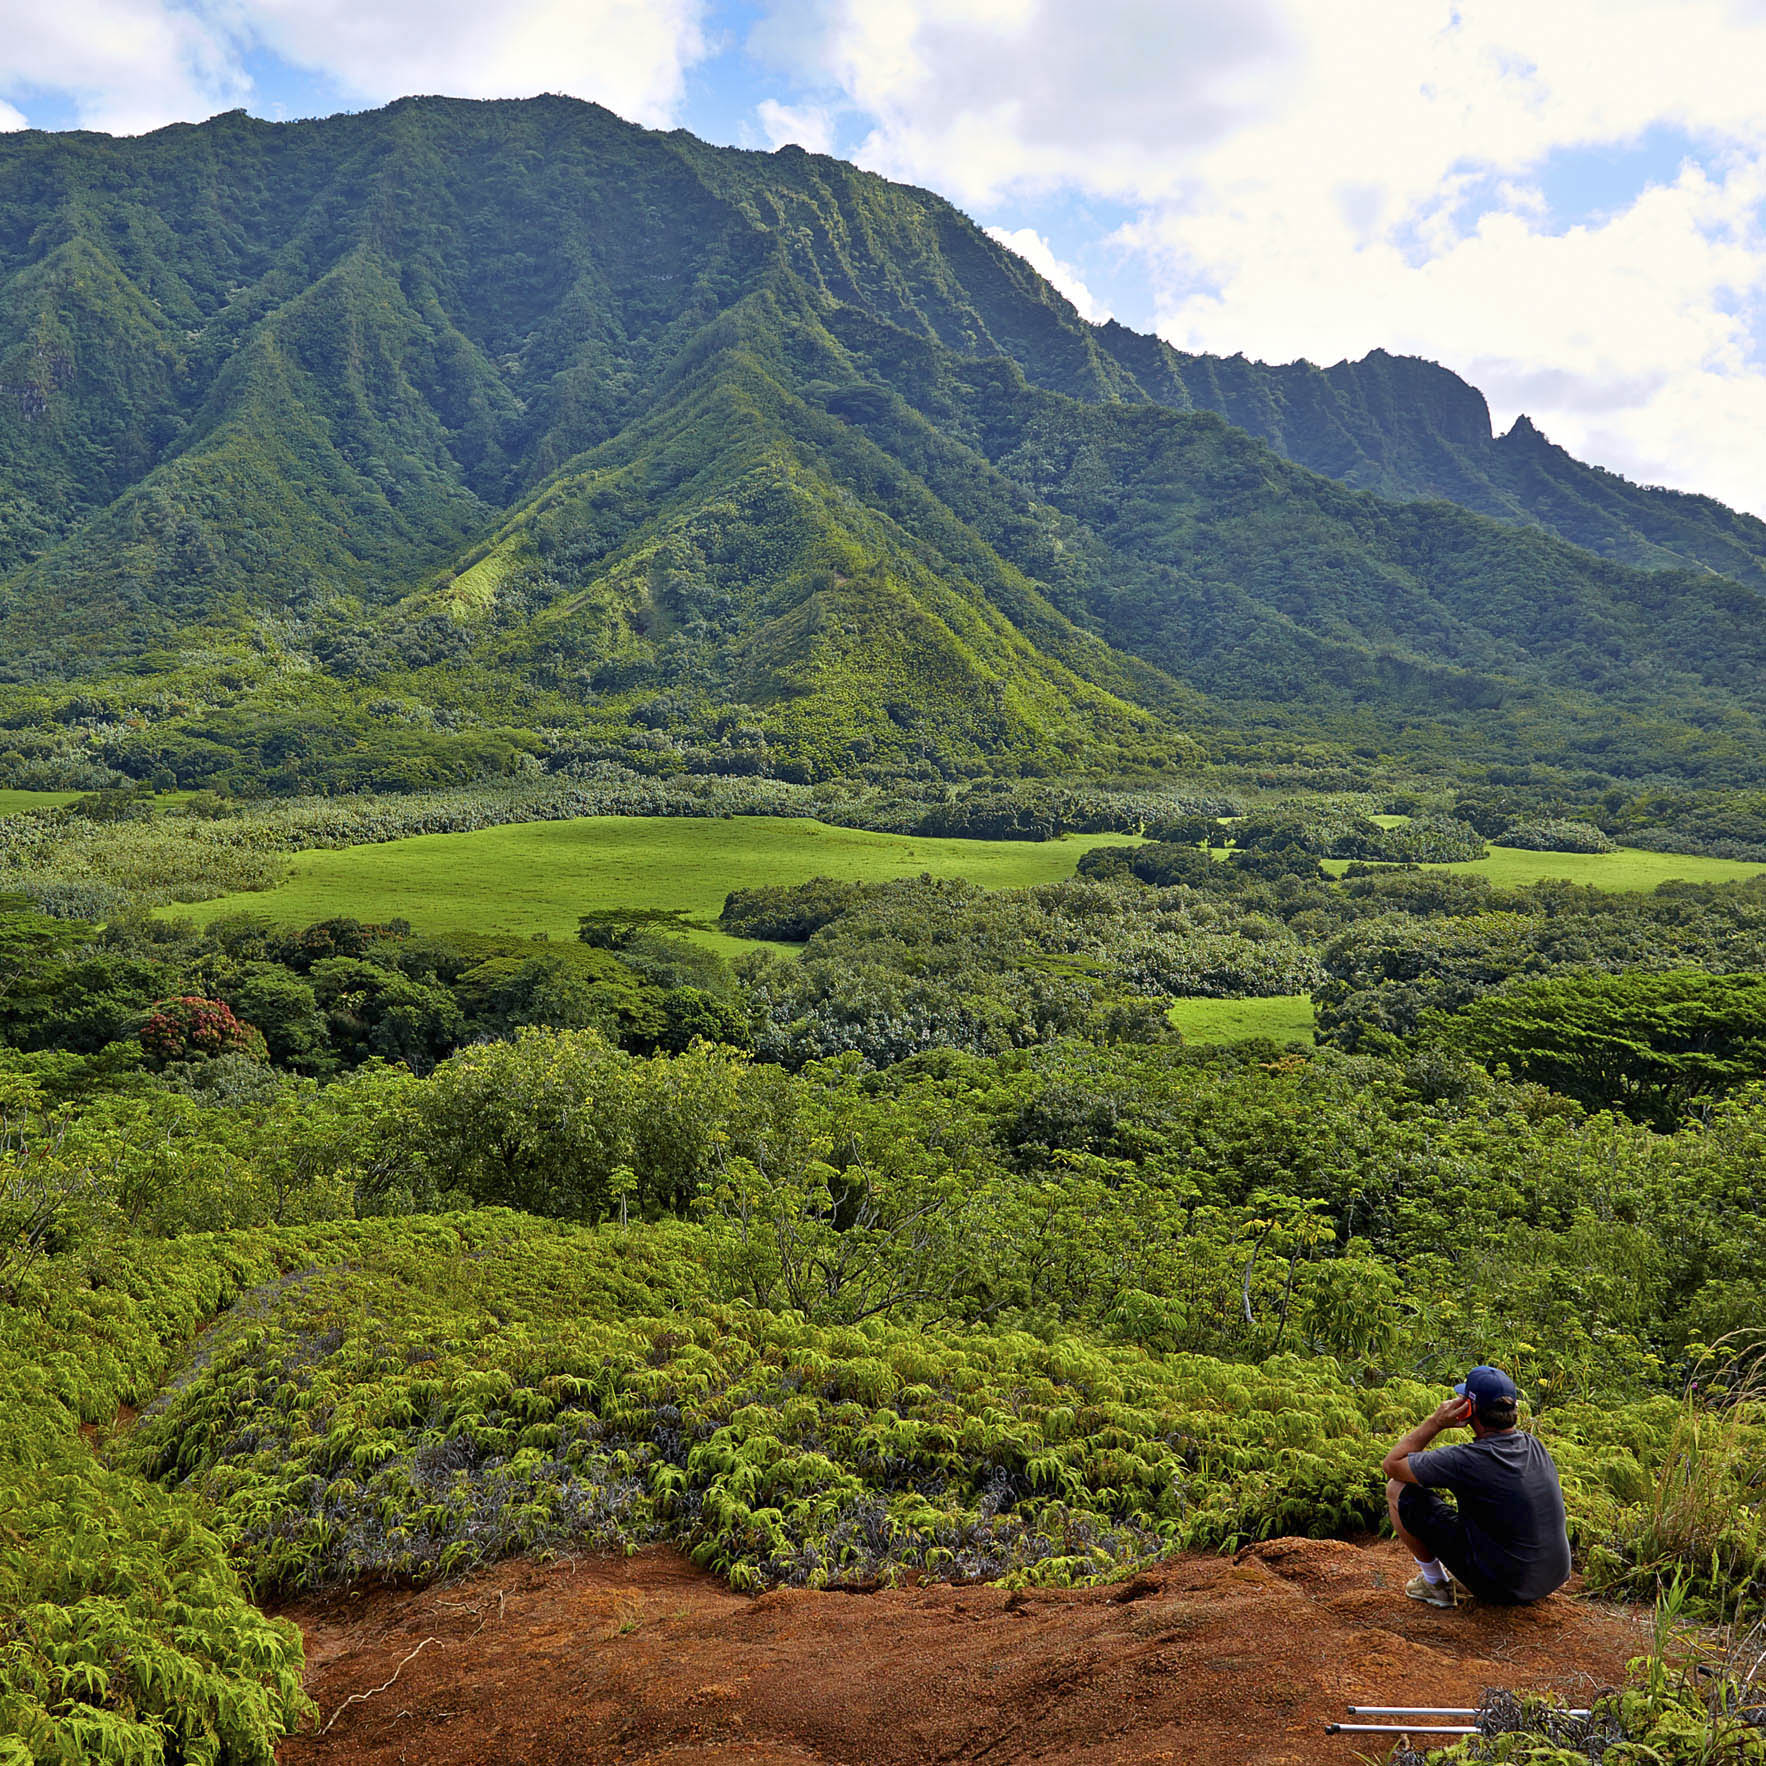 On location in Hawaii.